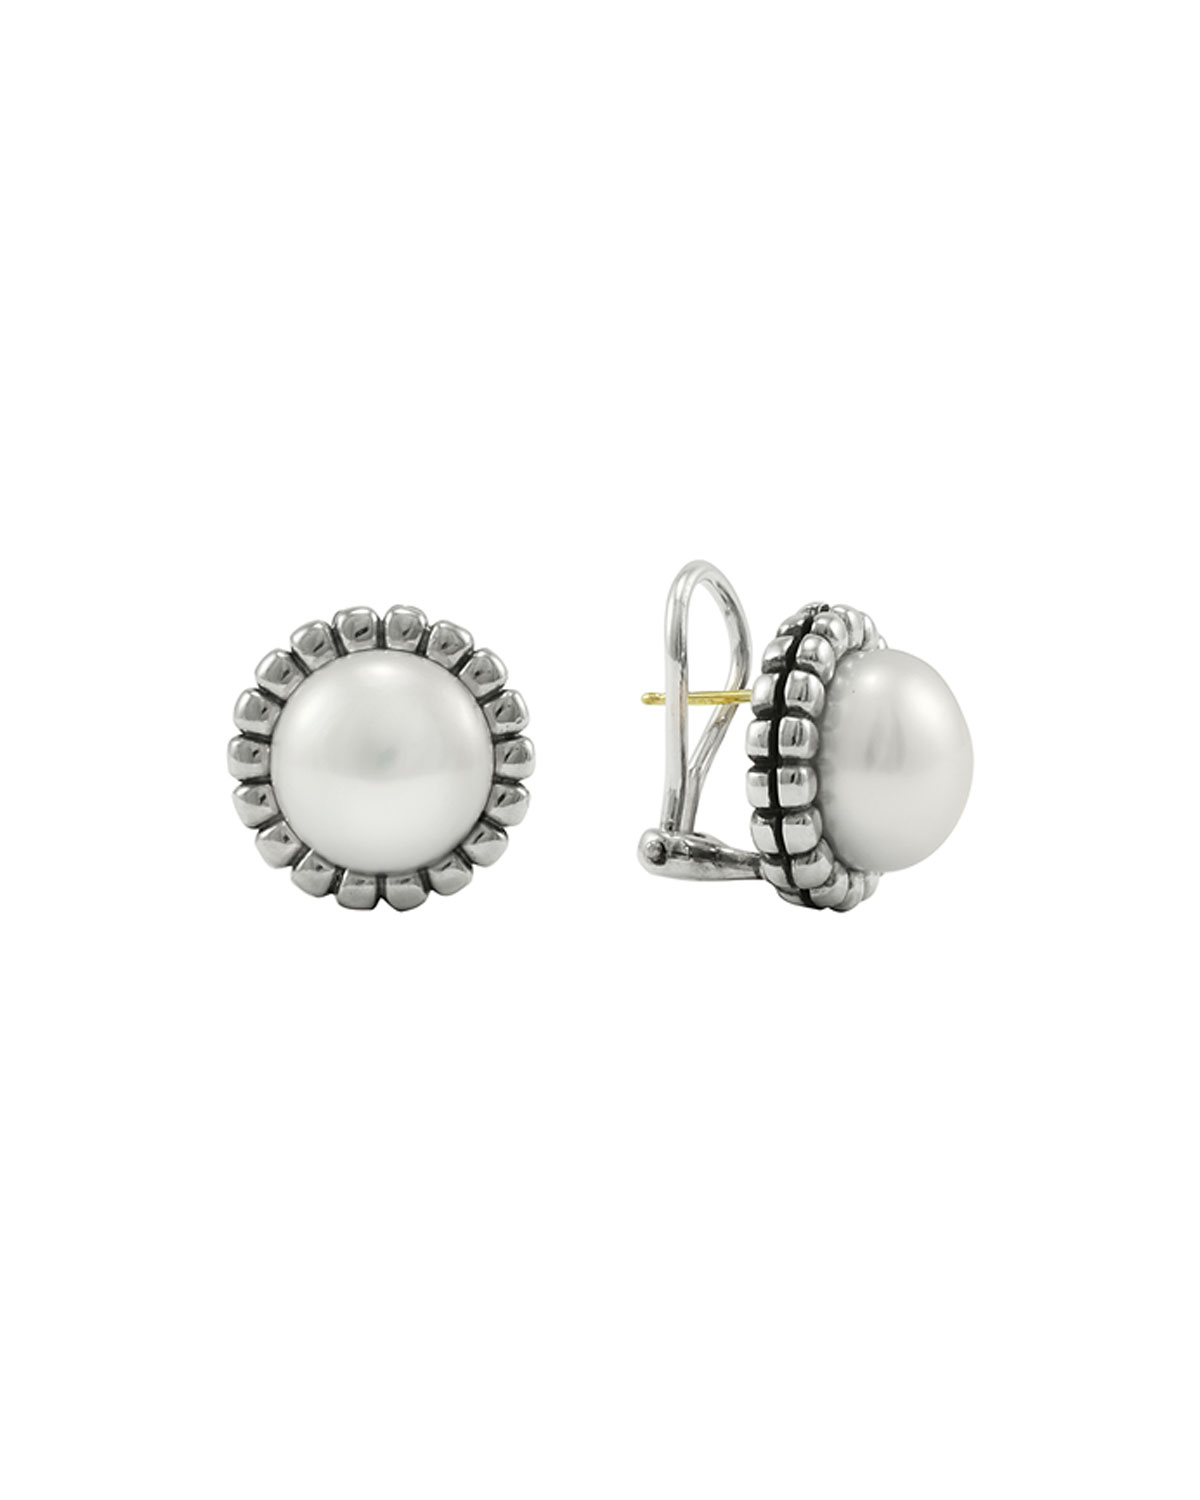 Lagos Fluted Pearl Stud Earrings, 12mm